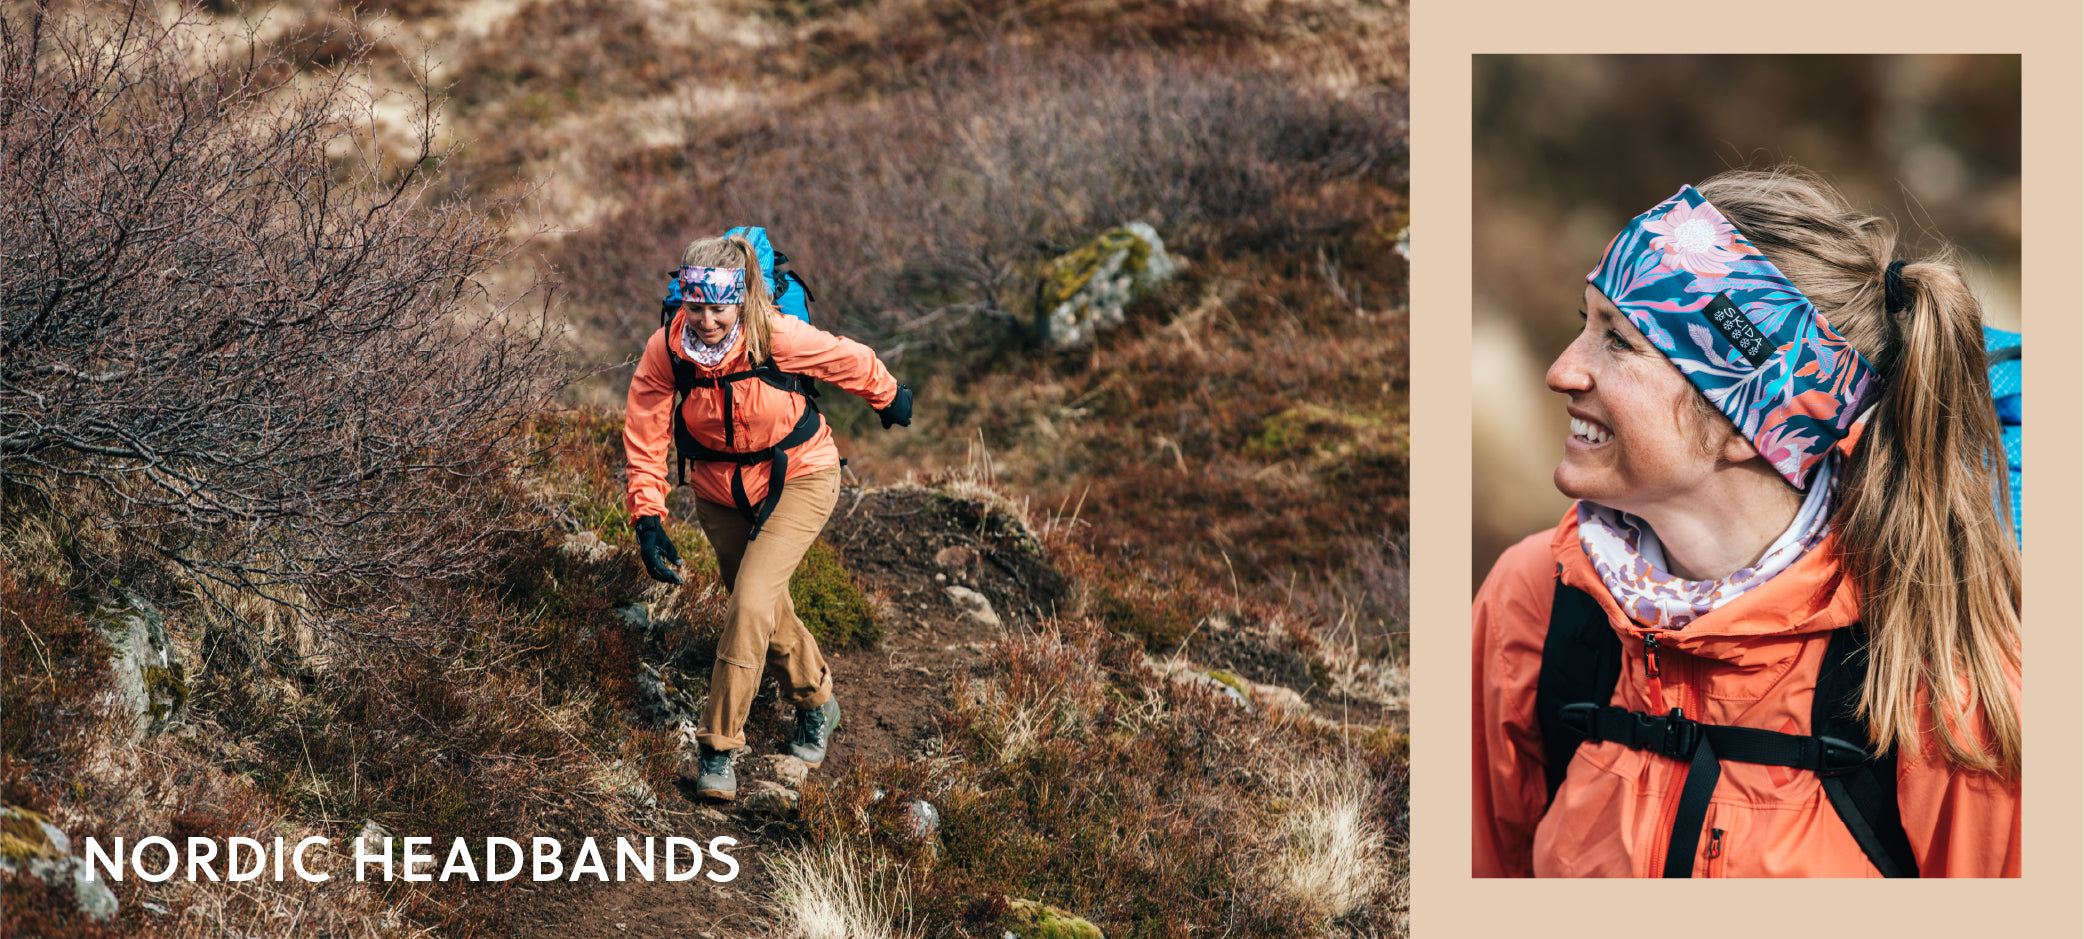 Skida's Lightweight & Breathable Nordic Headbands